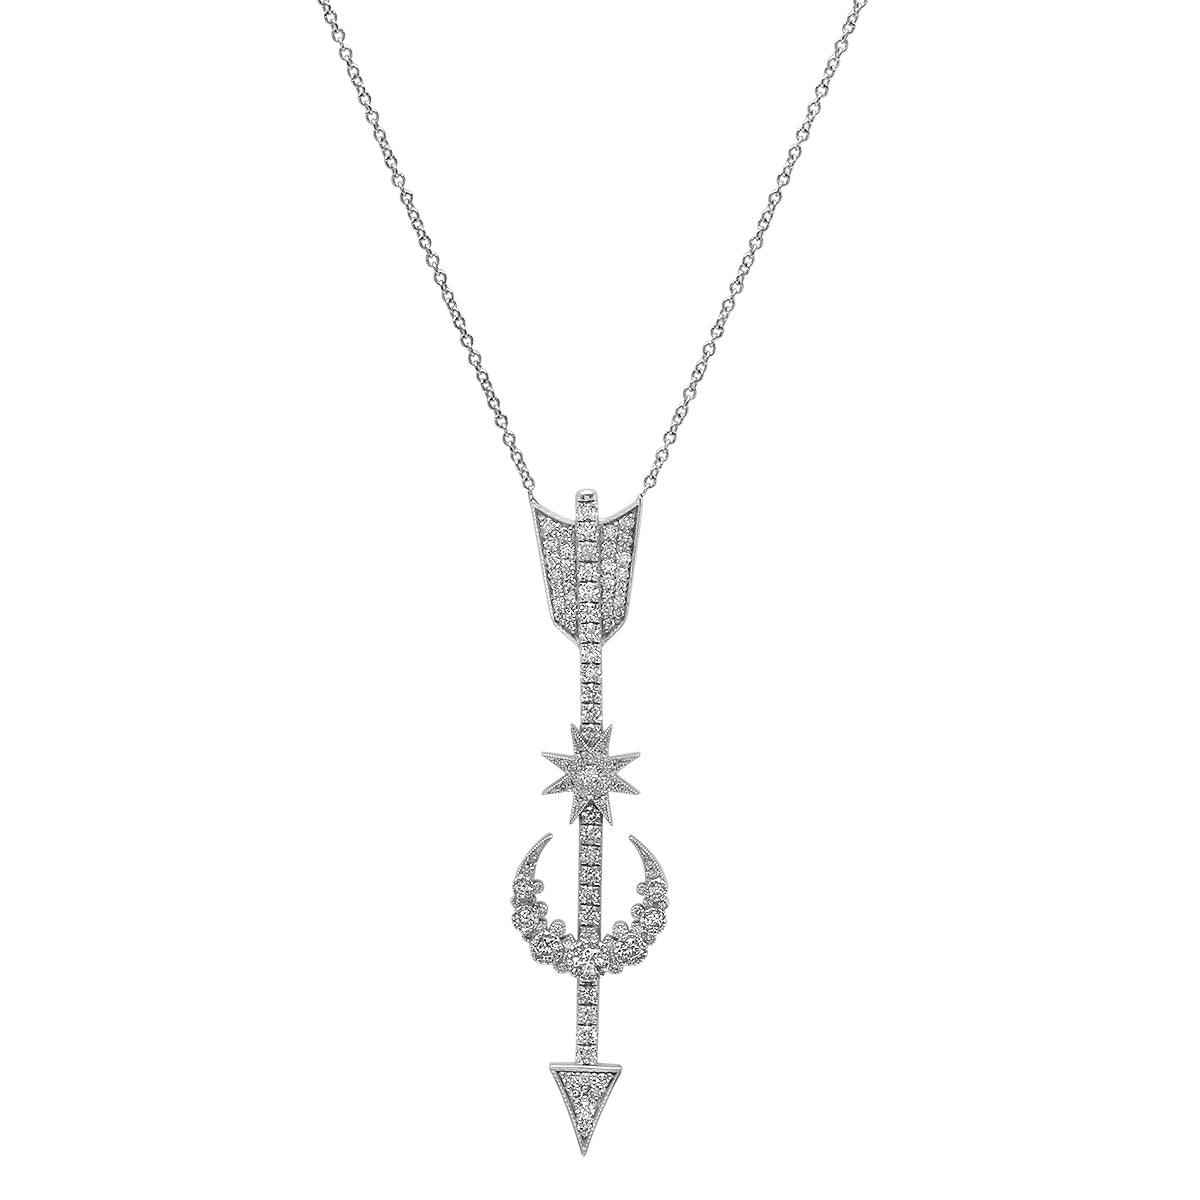 Star Arrow Pendant Necklace - Two Colors